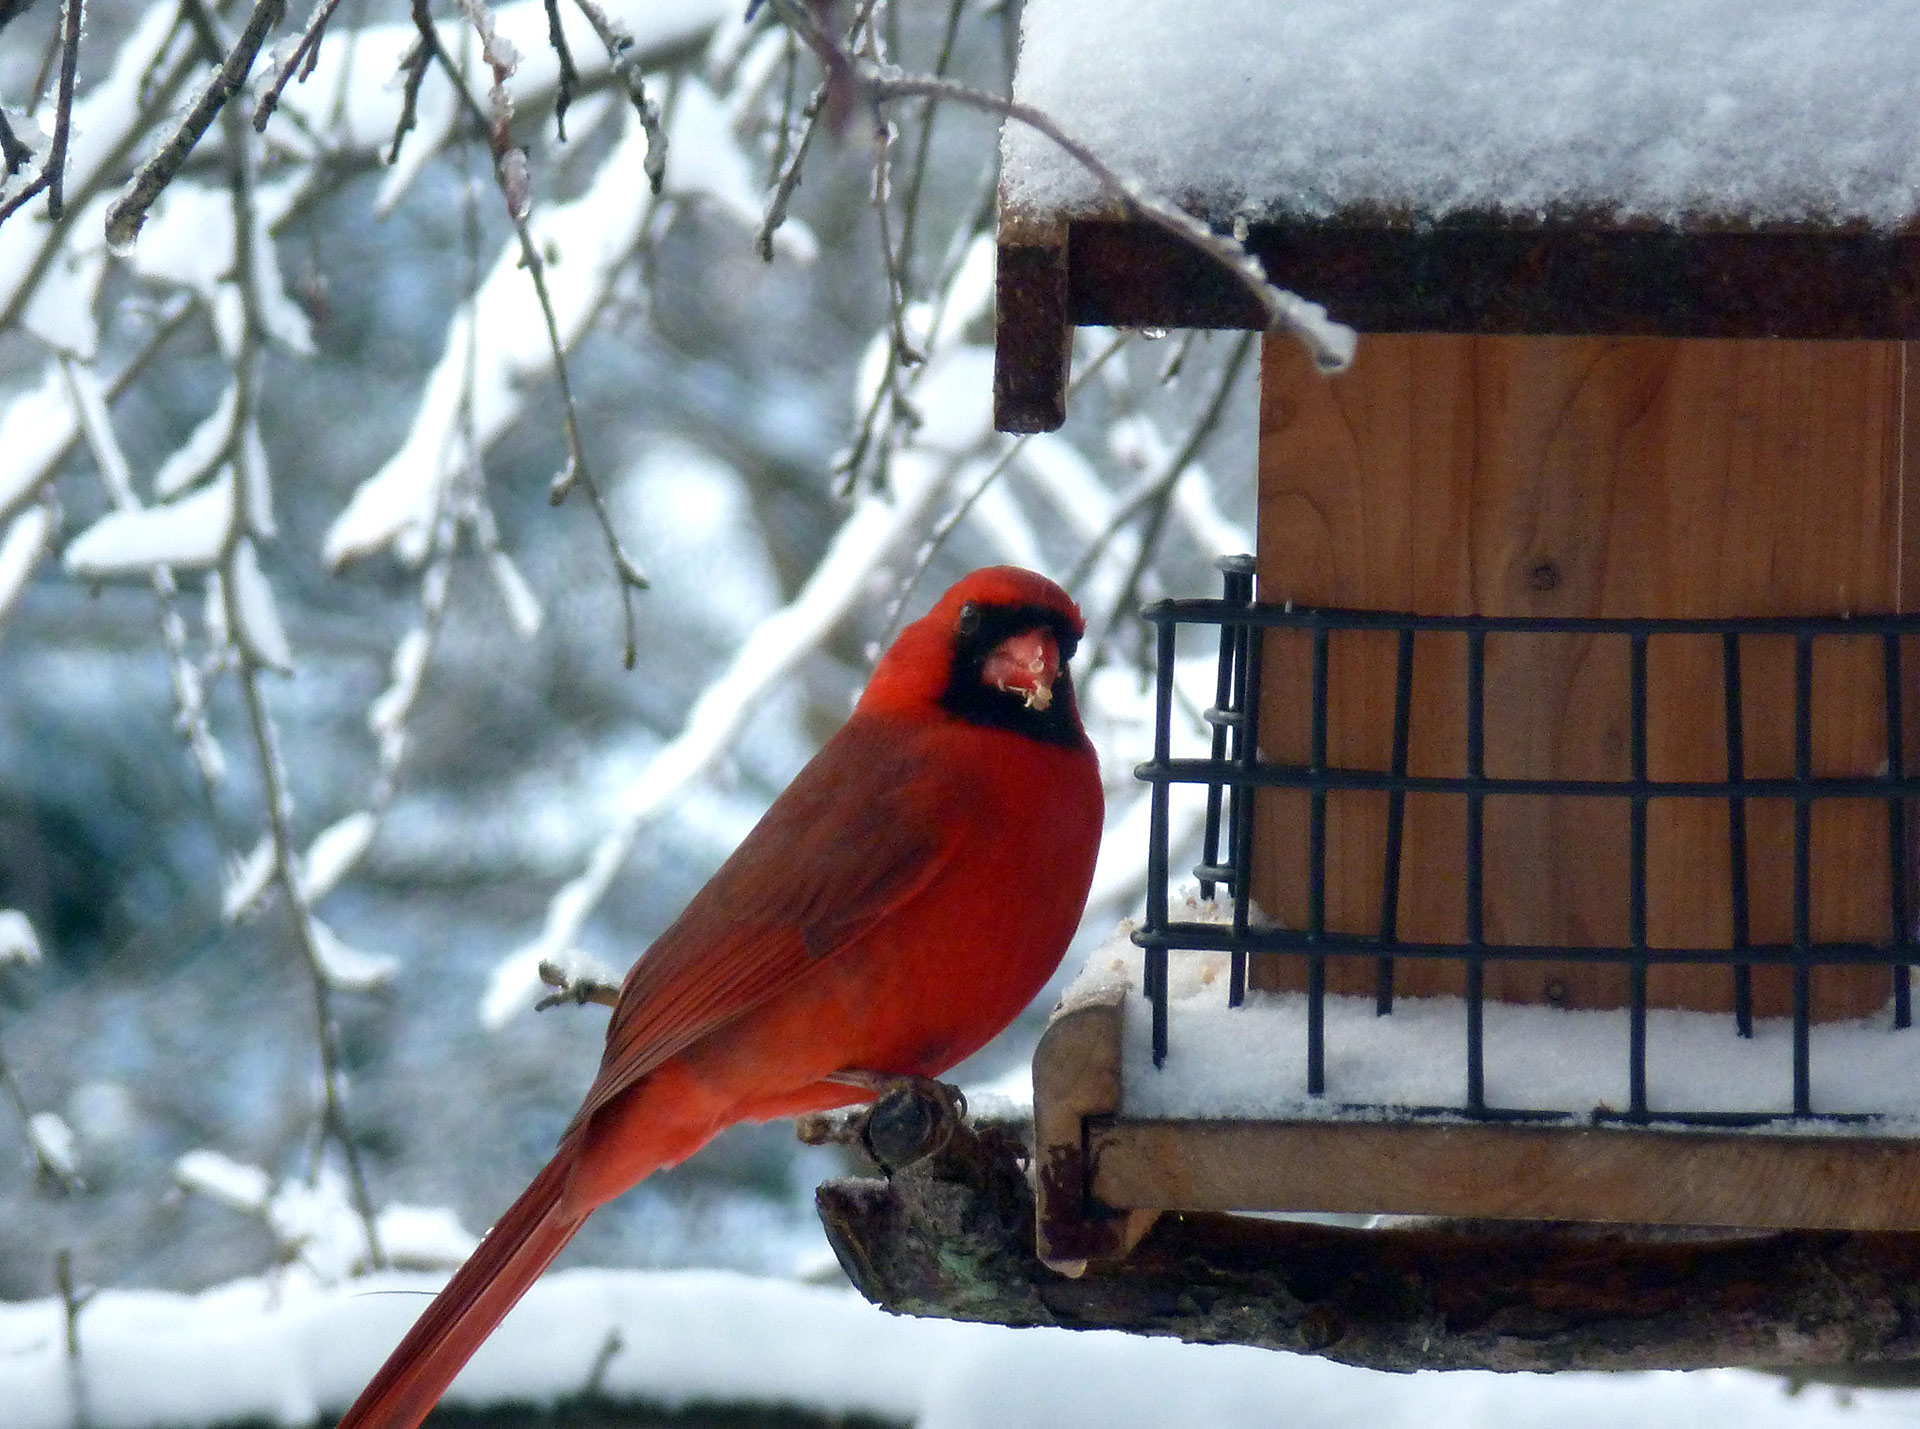 cardinal,bird, red, outdoor, snow, garden